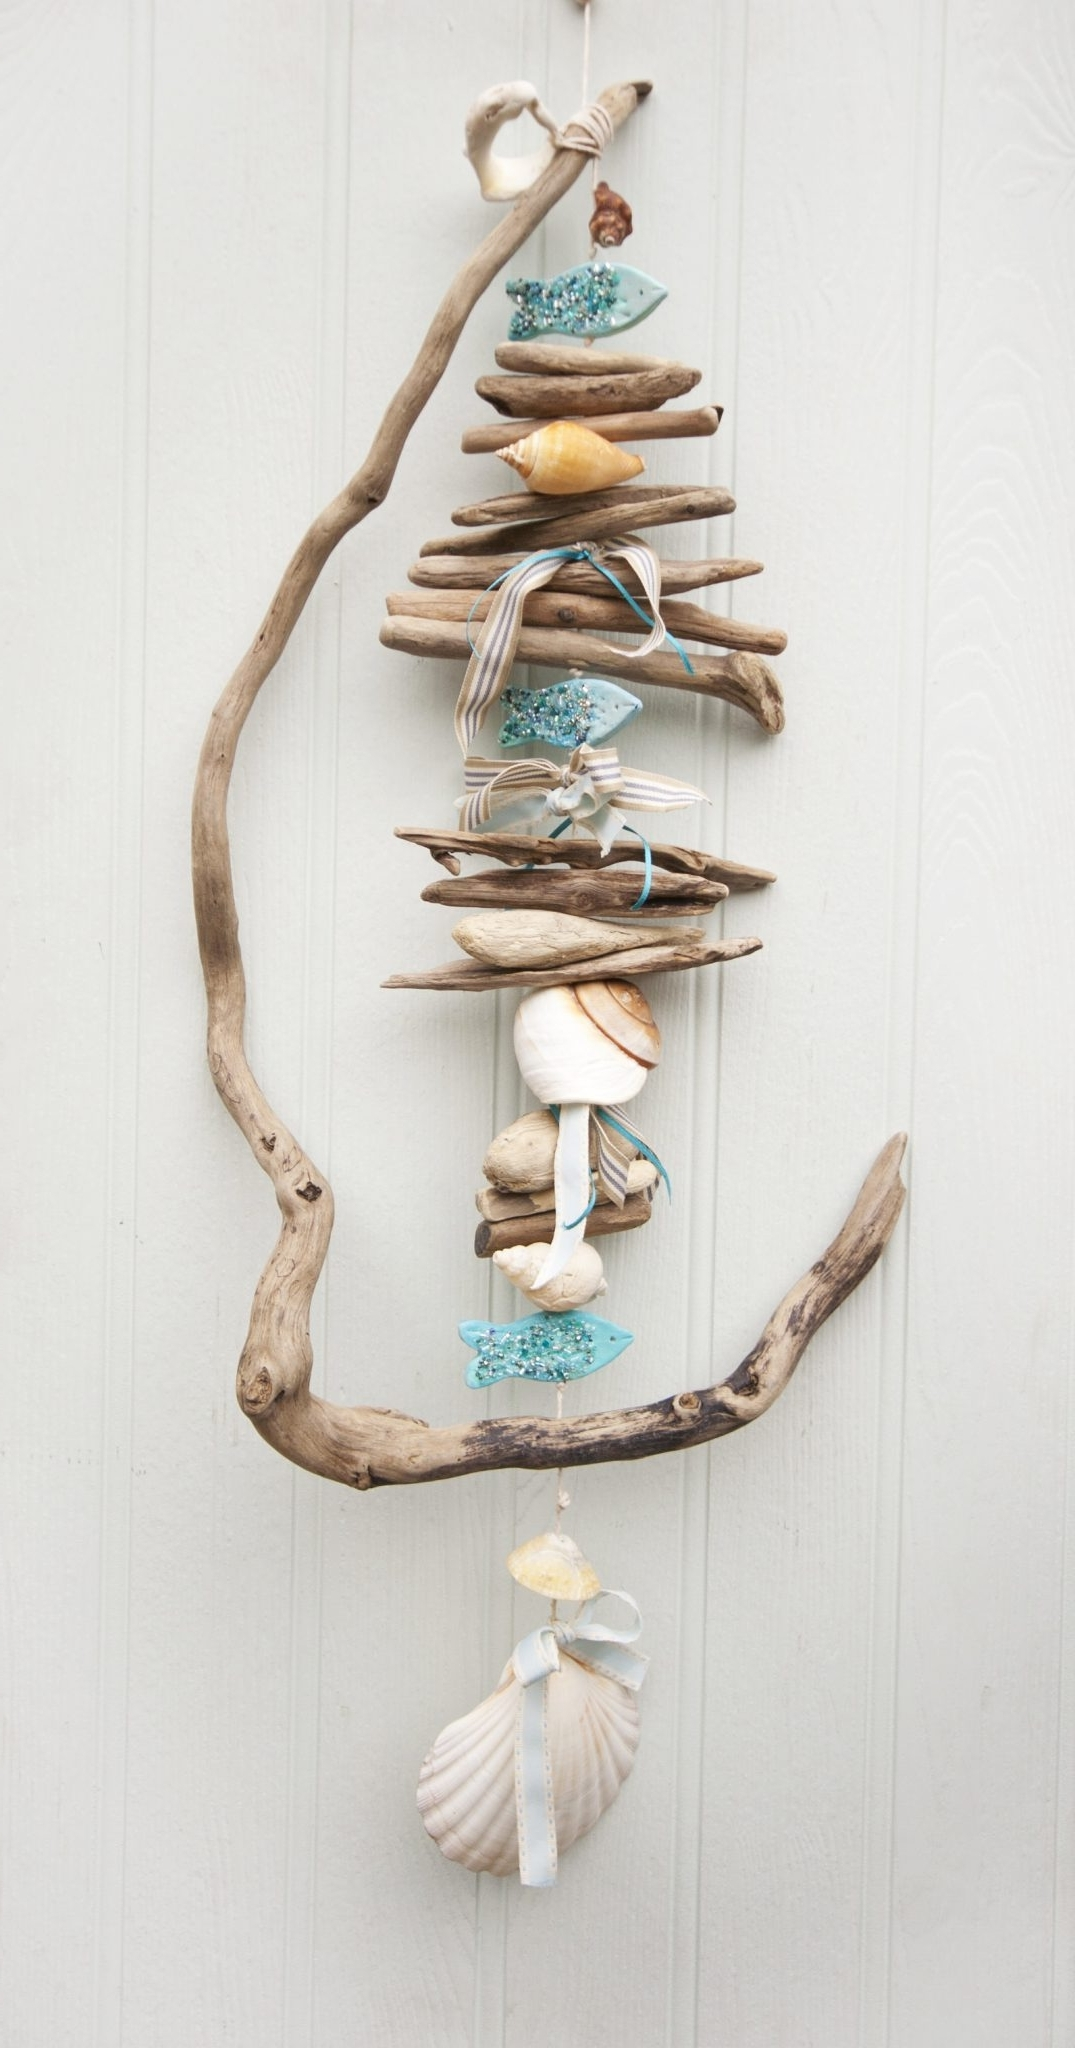 Driftwood Wall Art Pertaining To Newest Driftwood Wall Hanging Crafthubs Theydesign Throughout Driftwood (View 14 of 15)